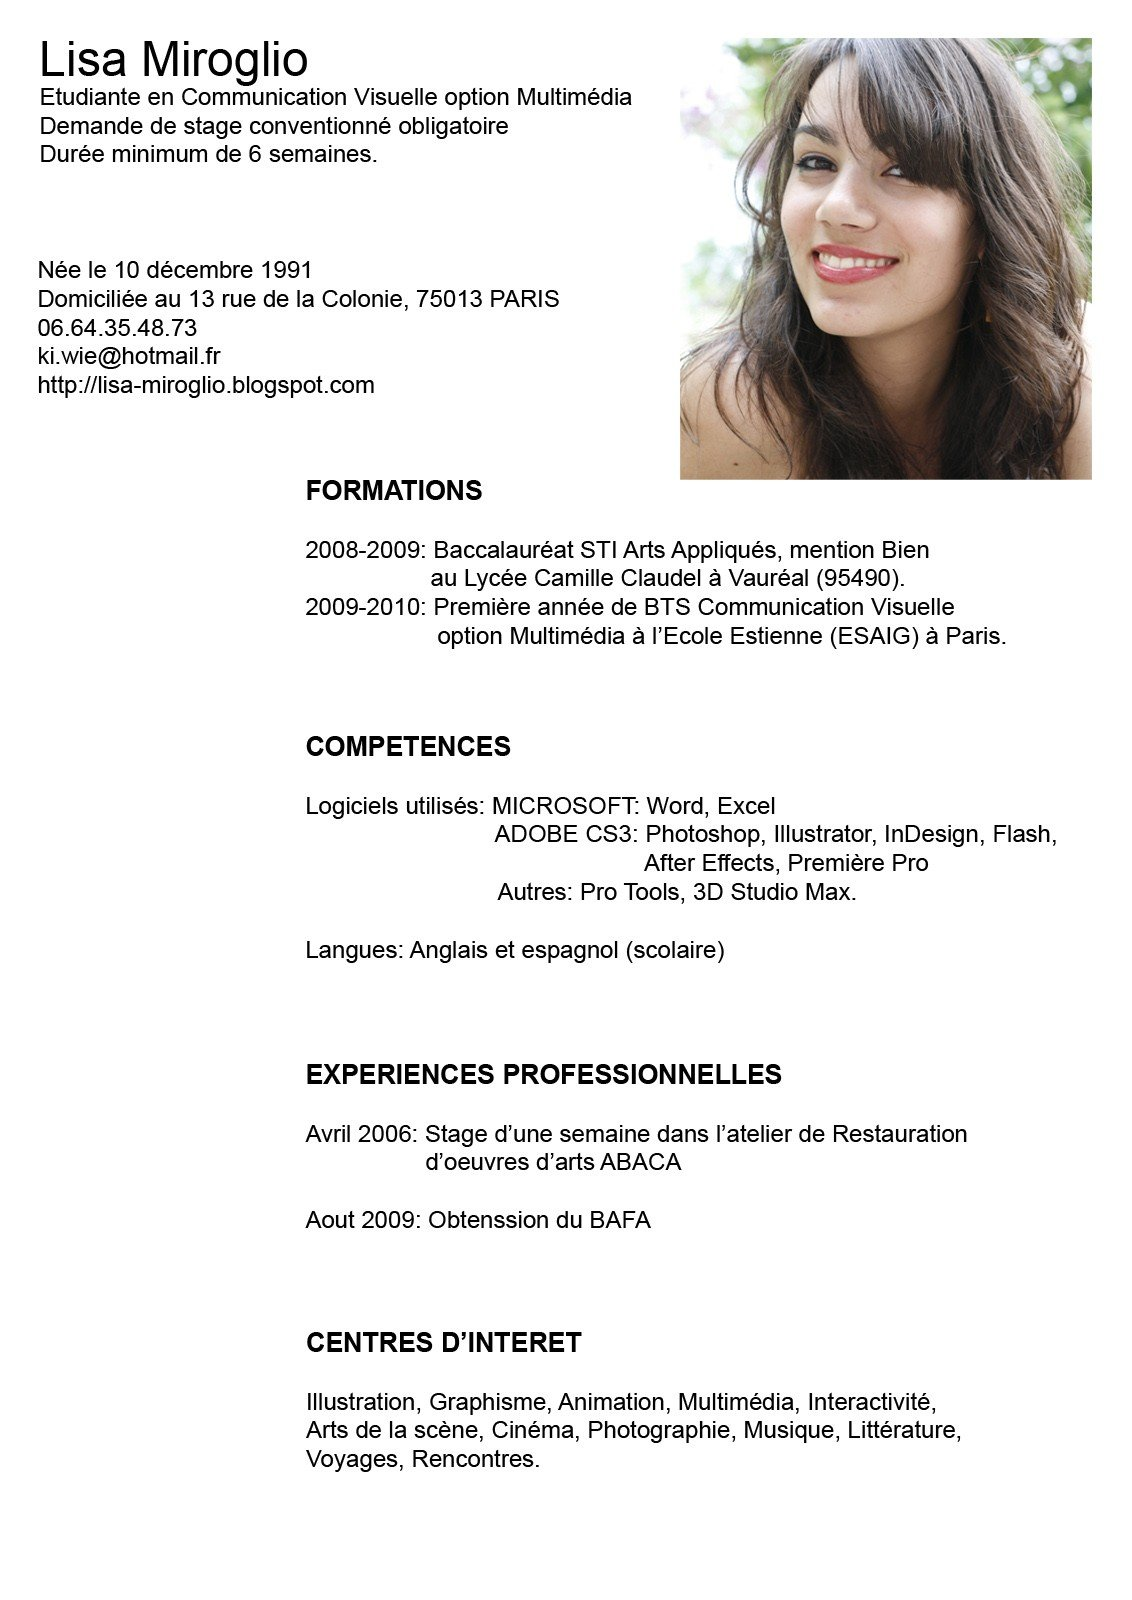 Ejemplos De Curriculum Vitae  Ejemplos De. Unique Cover Letter Tips. Application For Employment With Walmart. Resume Builder Ipad Free. Resume Sample Free. Letter Resignation As Director. Cover Letter For Internship High School Students. Resume Example Gpa. Ejemplos De Como Redactar Un Curriculum Vitae Profesional